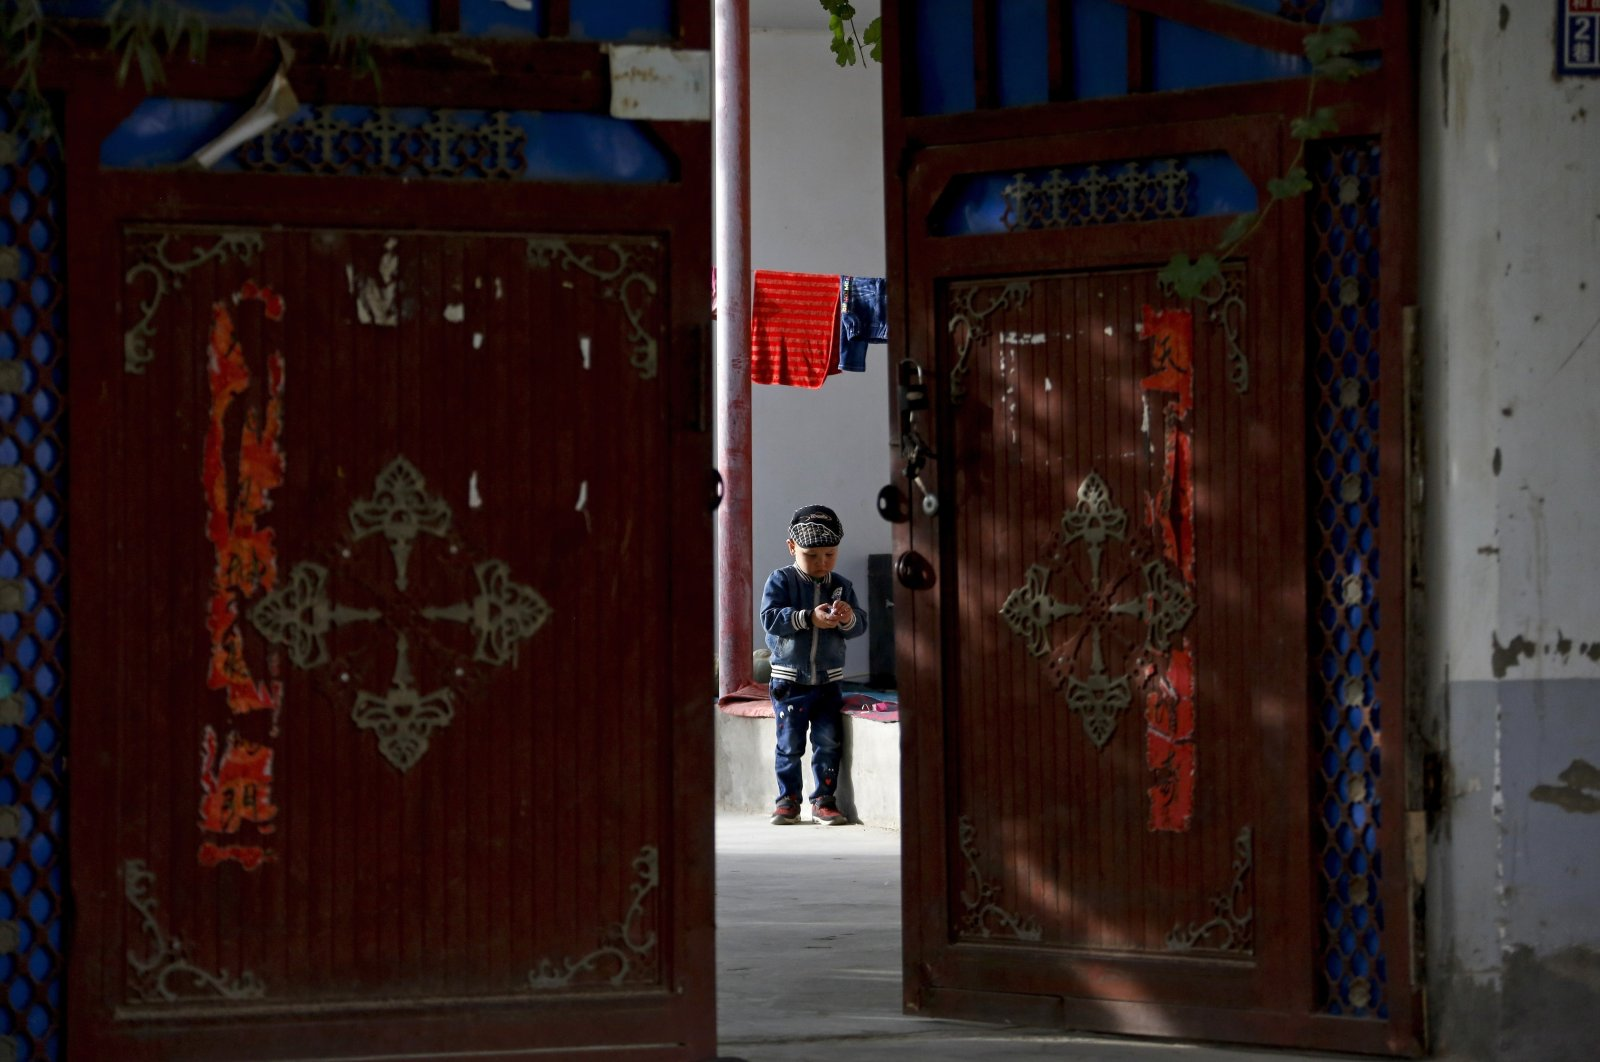 A Uighur child plays alone in the courtyard of a home at the Unity New Village in Hotan, in western China's Xinjiang region, Sept. 20, 2018. (AP Photo)